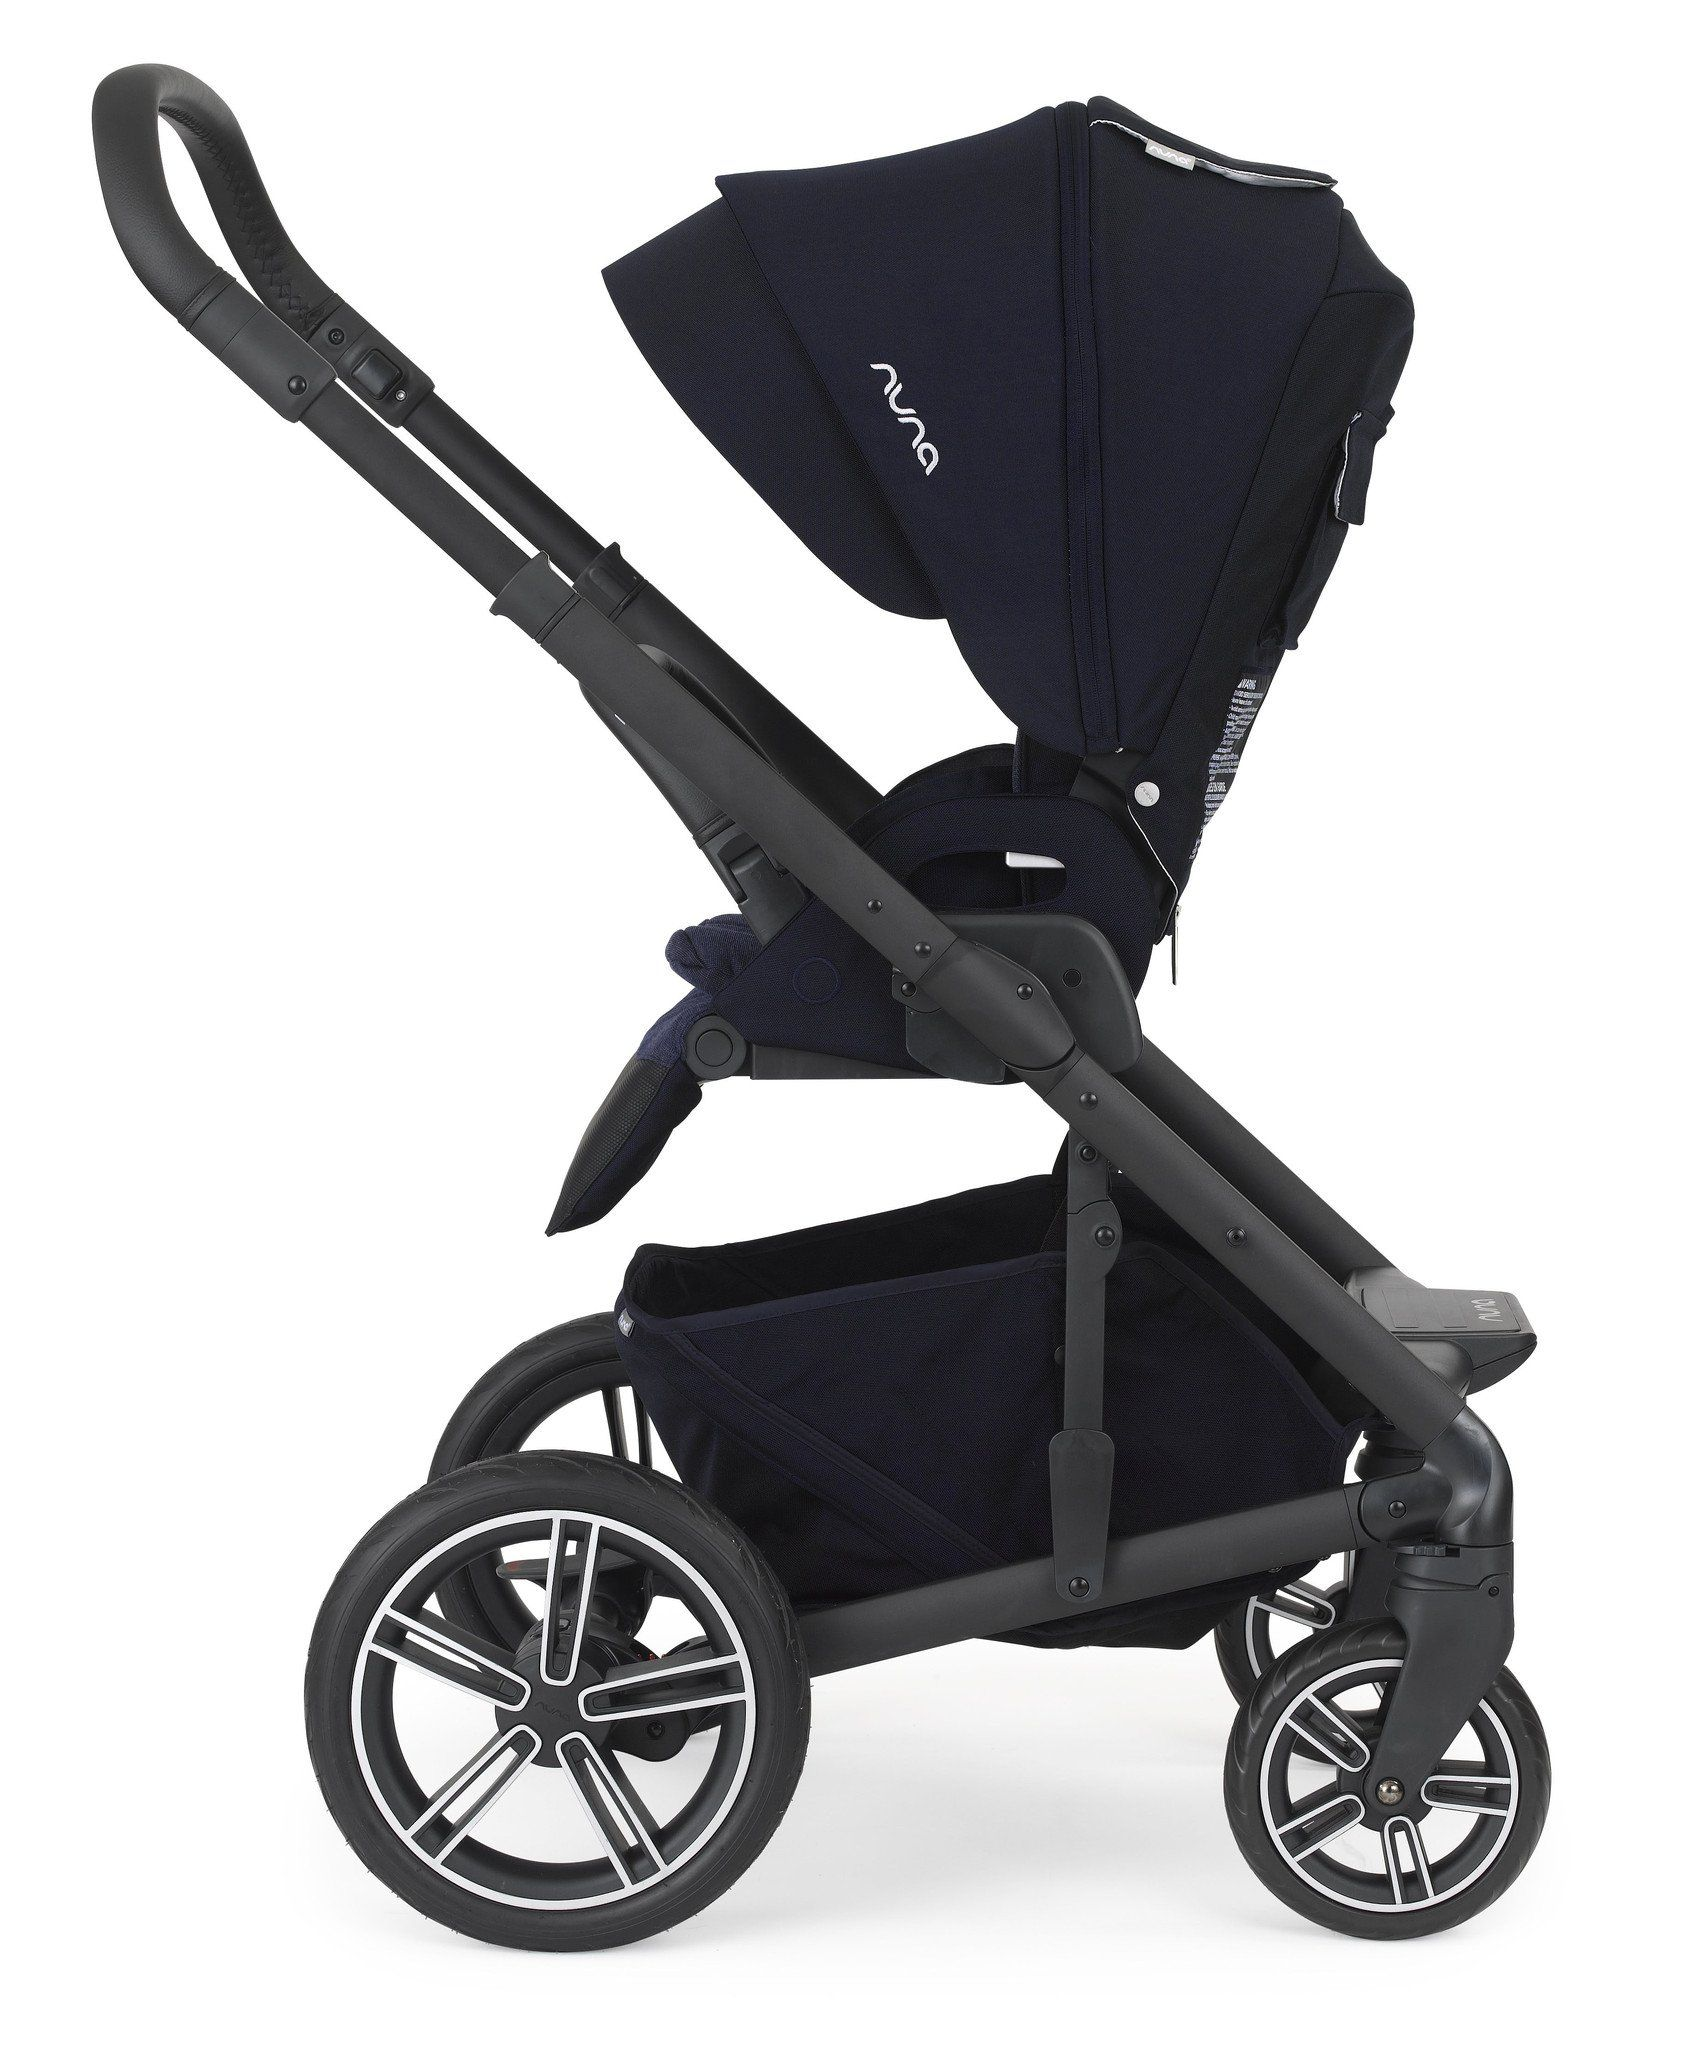 Nuna MIXX 2 STROLLER FLOOR MODEL (With images) Stroller